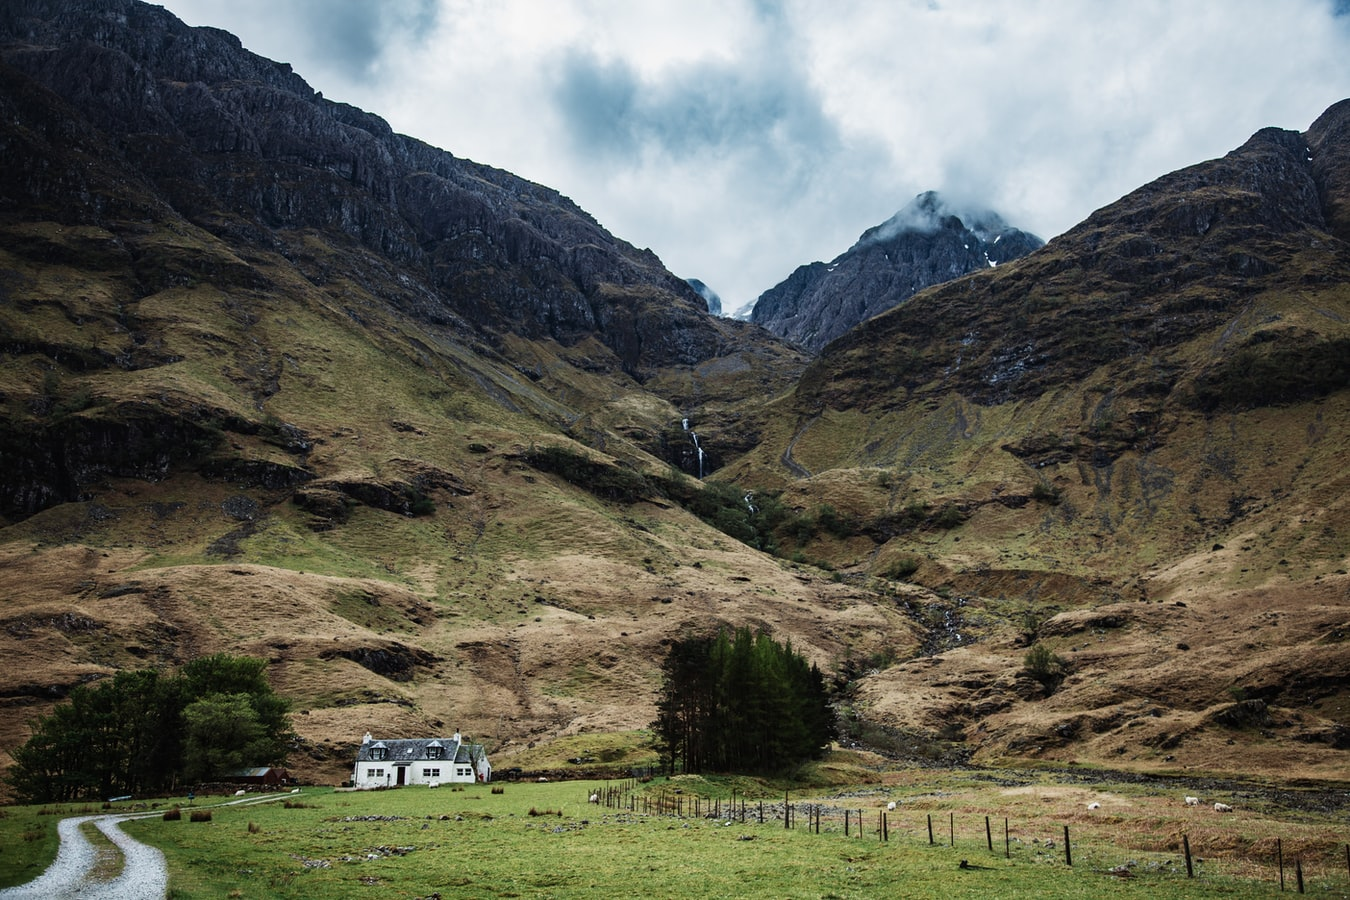 West Highland Way Wild Camping: The Ultimate Guide in 2020